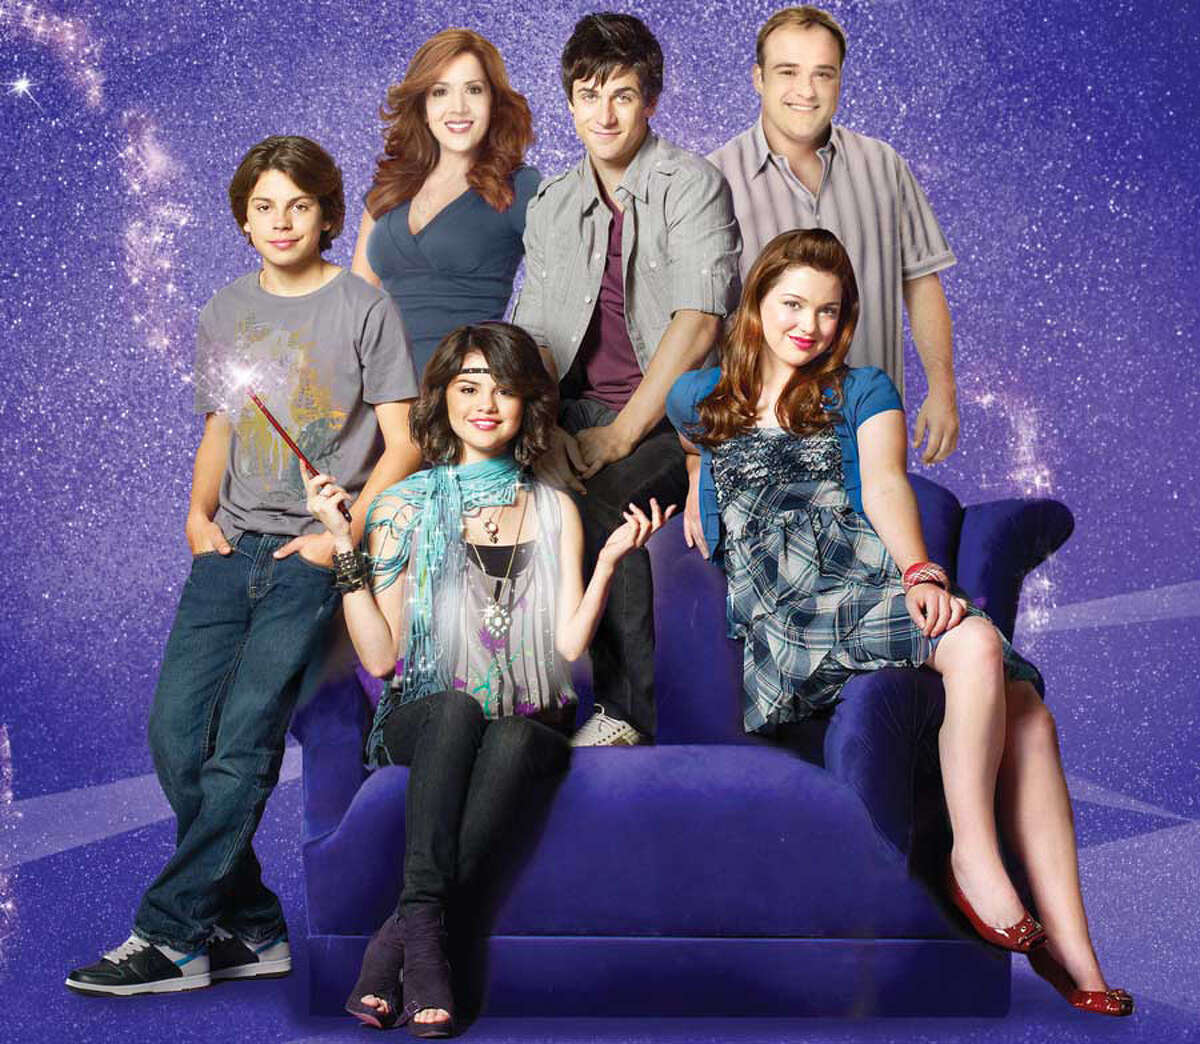 Wizards of Waverly Place: The Movie On Saturday, May 28 at 6:15 p.m., you'll get to catch up with Houston native Selena Gomez in the movie adaptation of this hit show, and the role that made her a household name.